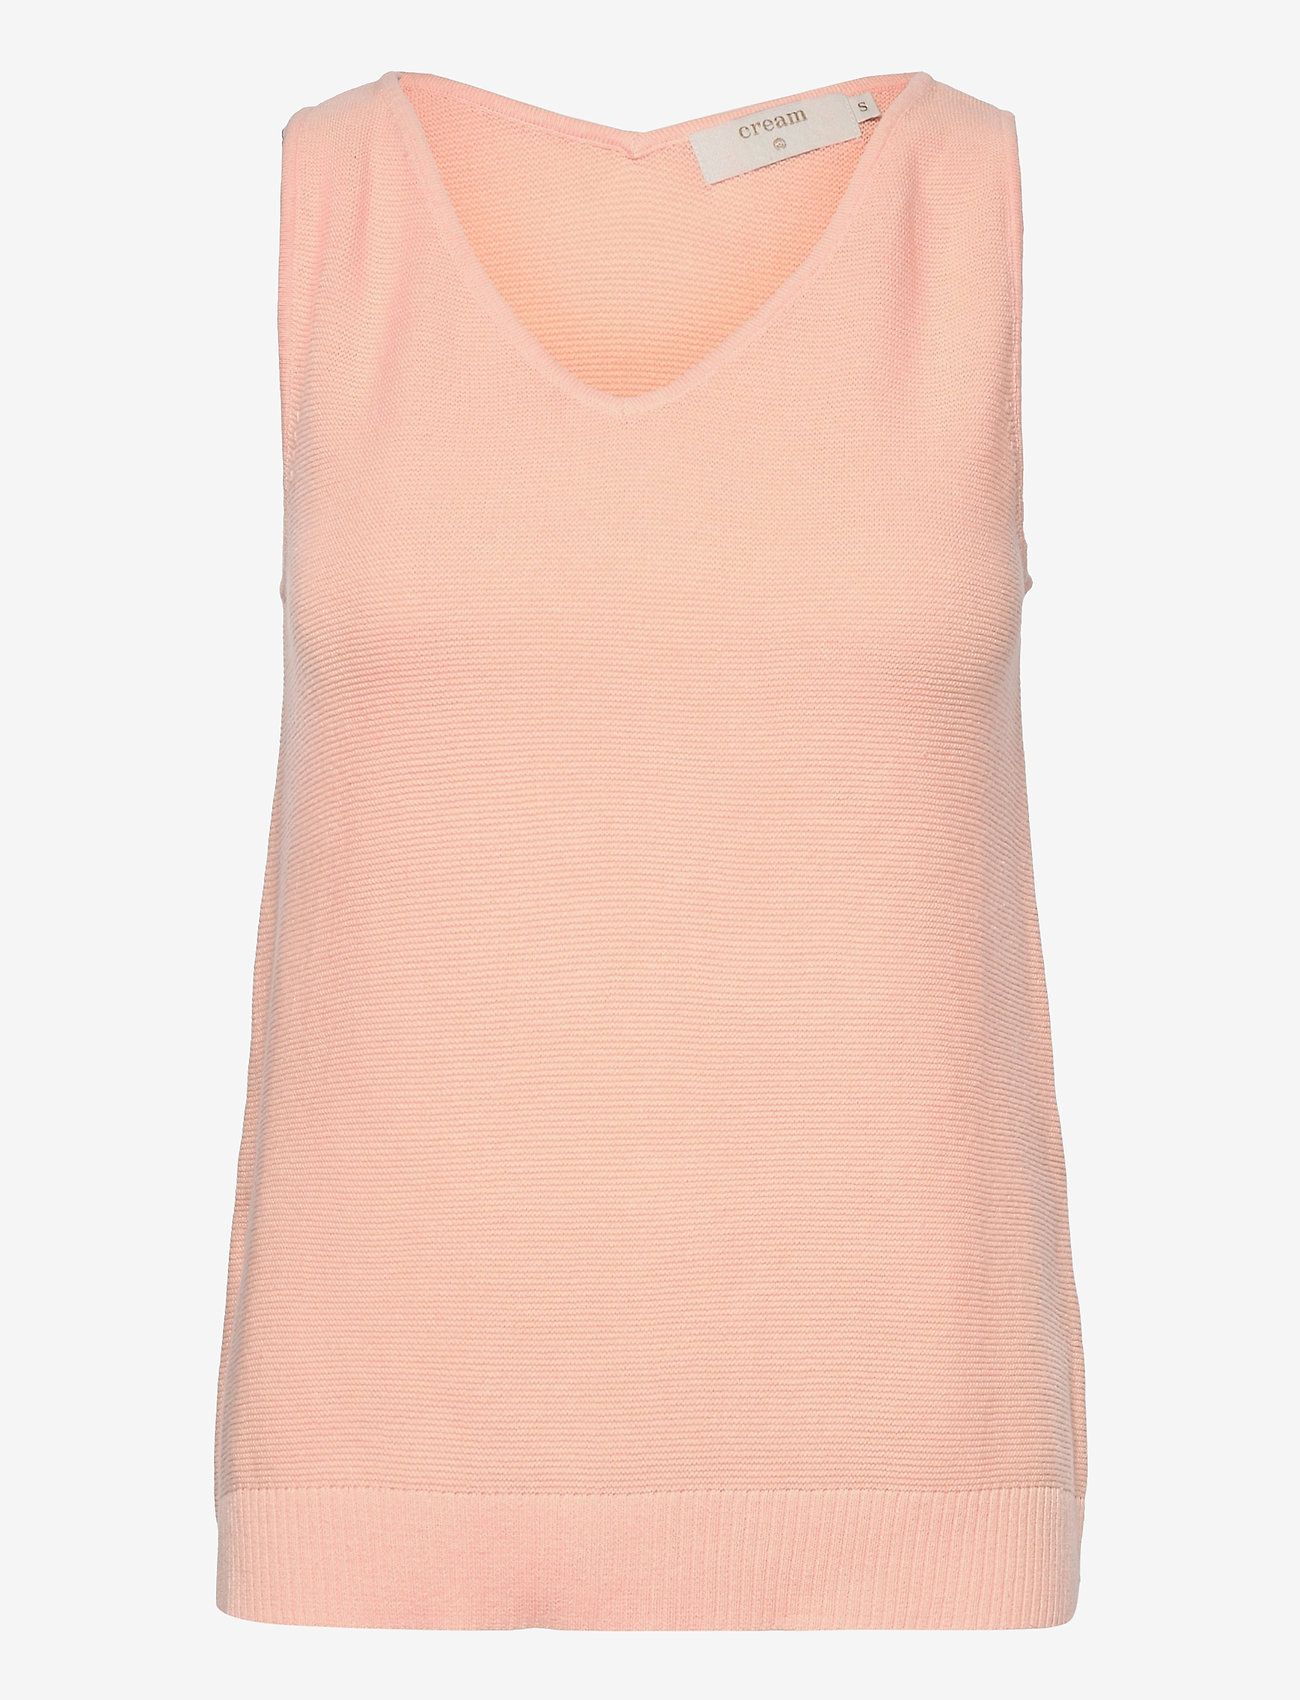 Cream - CRSillar Knit Top - knitted vests - pink sand - 1